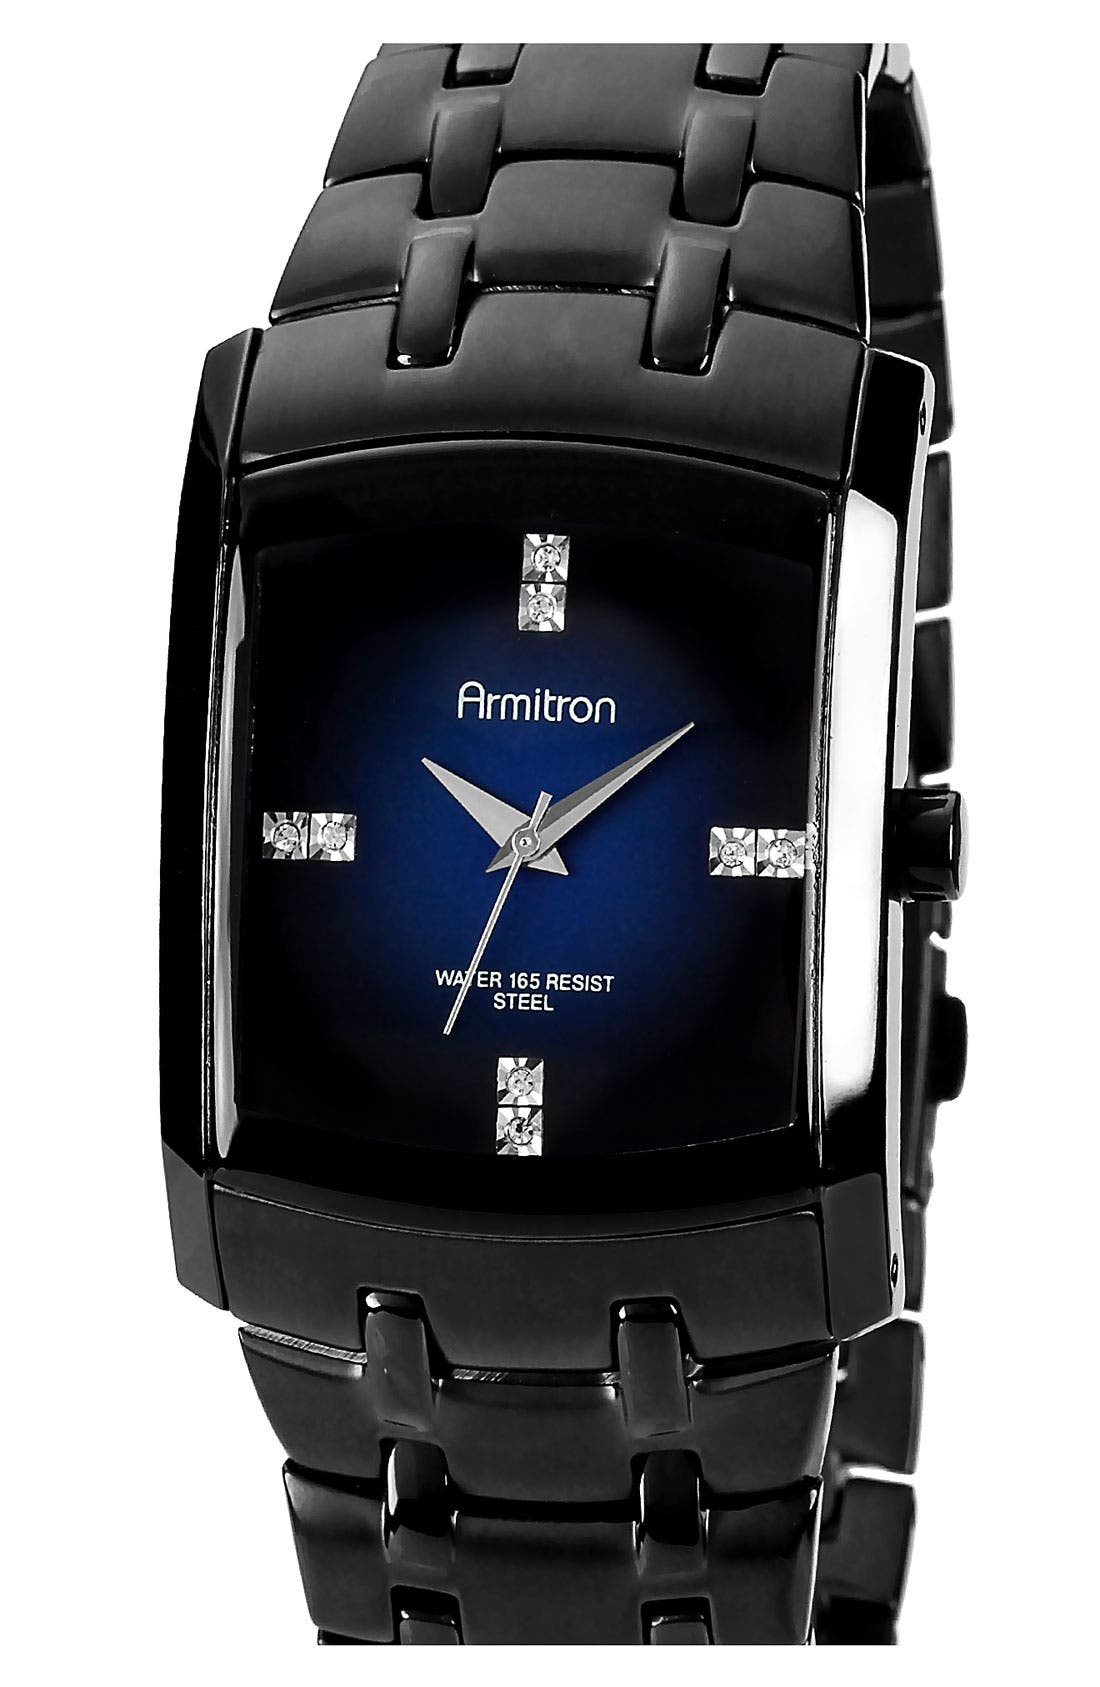 Main Image - Armitron Square Dial Bracelet Watch, 33mm x 35mm